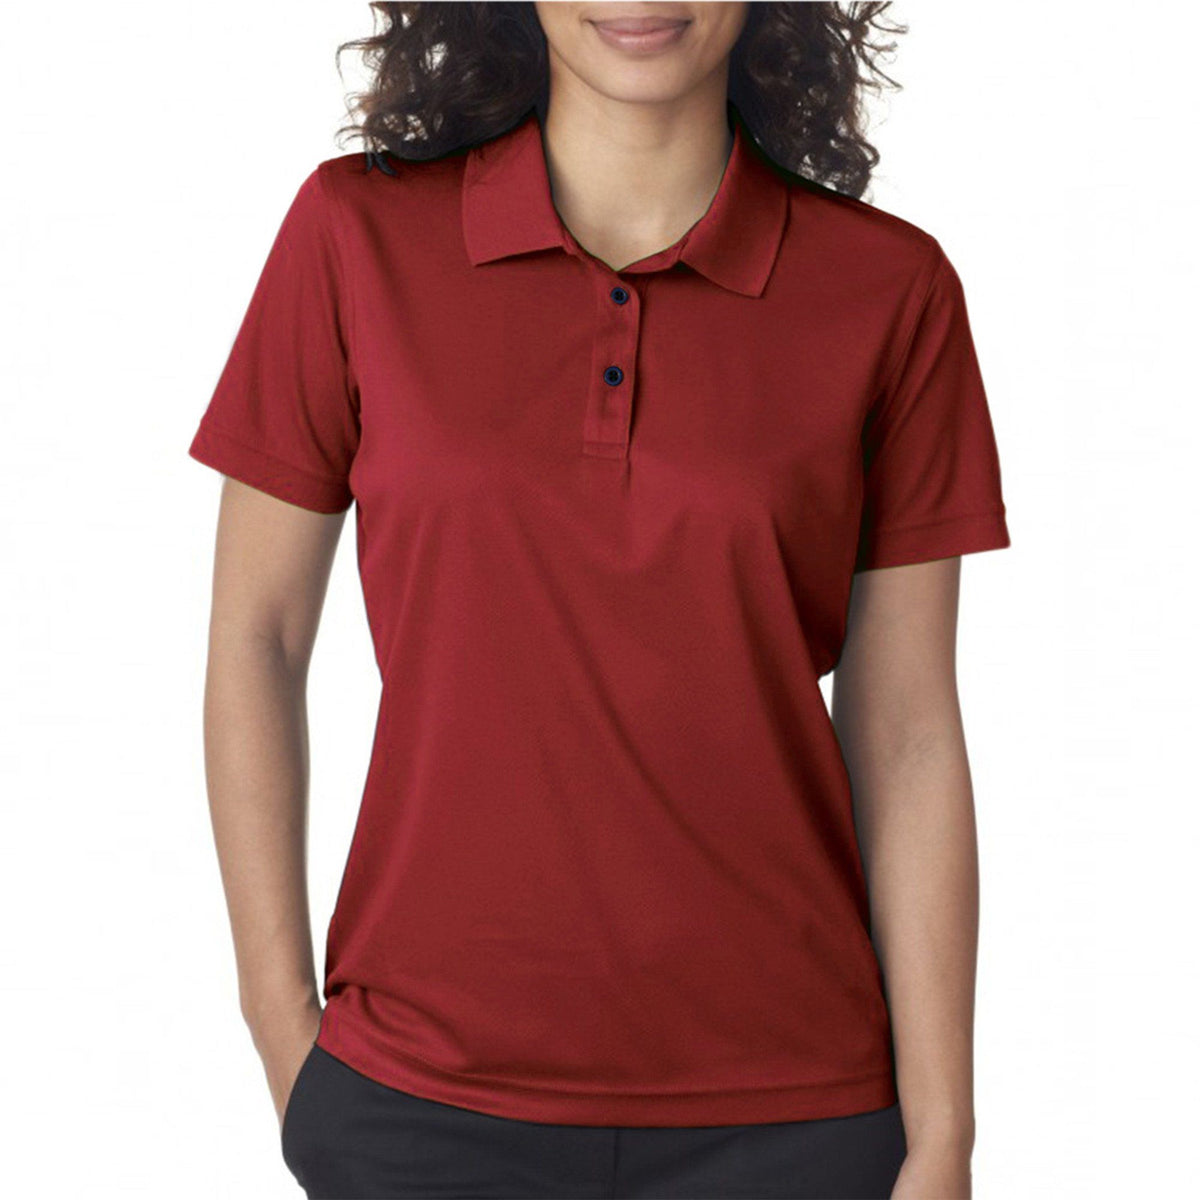 Polo Republica Campri Short Sleeve Polo Shirt Women's Polo Shirt Polo Republica Red M